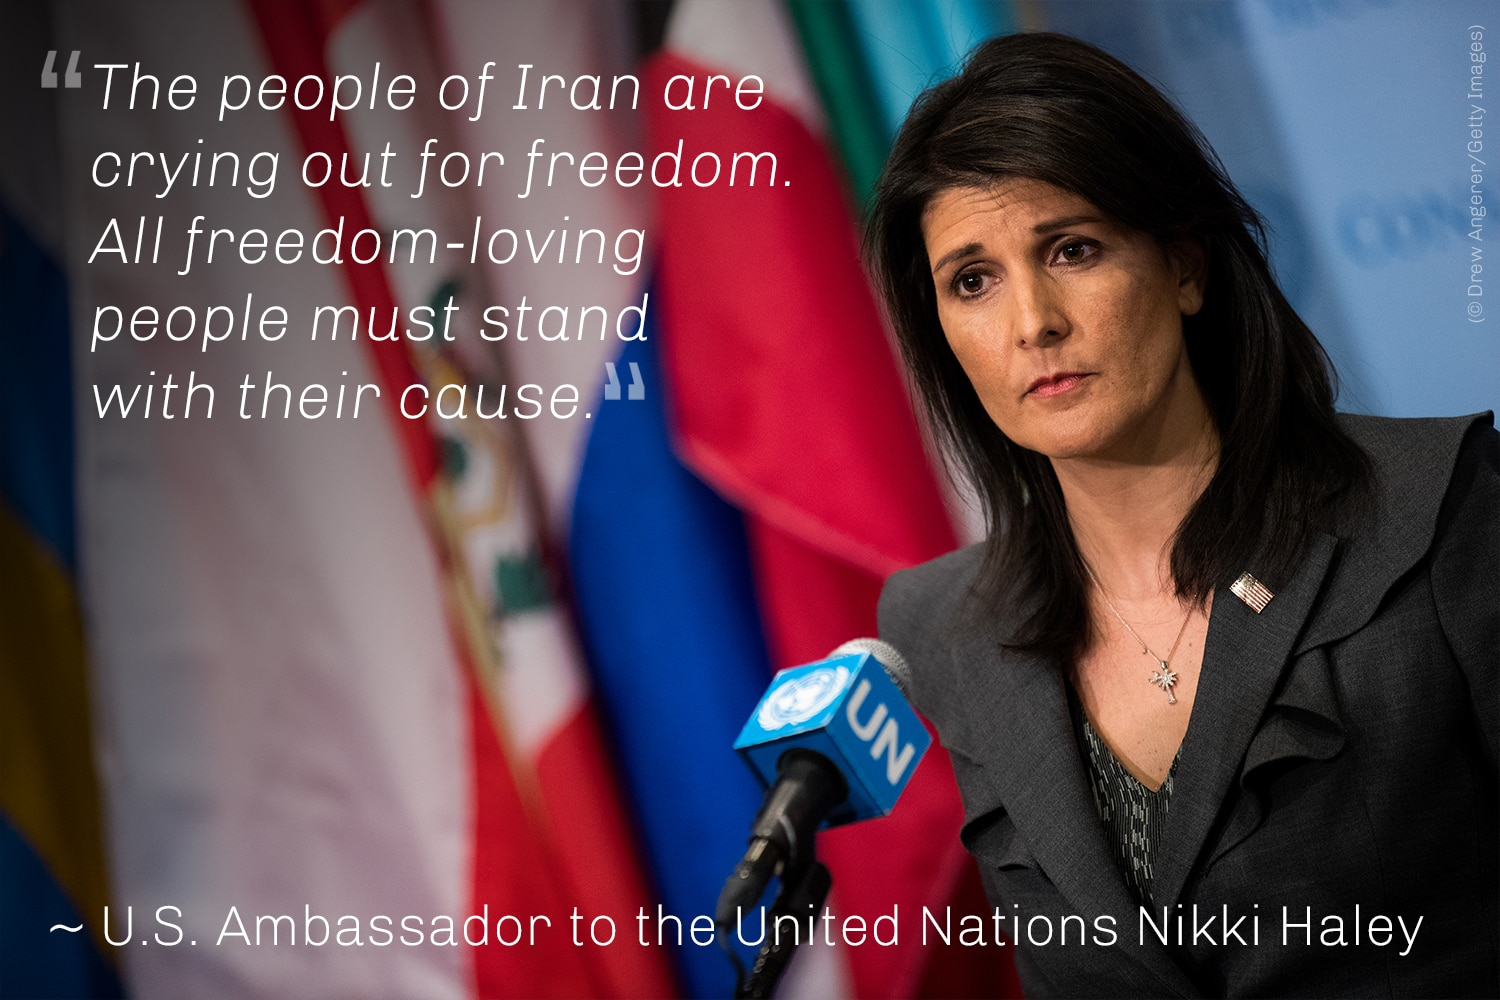 Nikki Haley at microphone with Haley quote (© Drew Angerer/Getty Images)